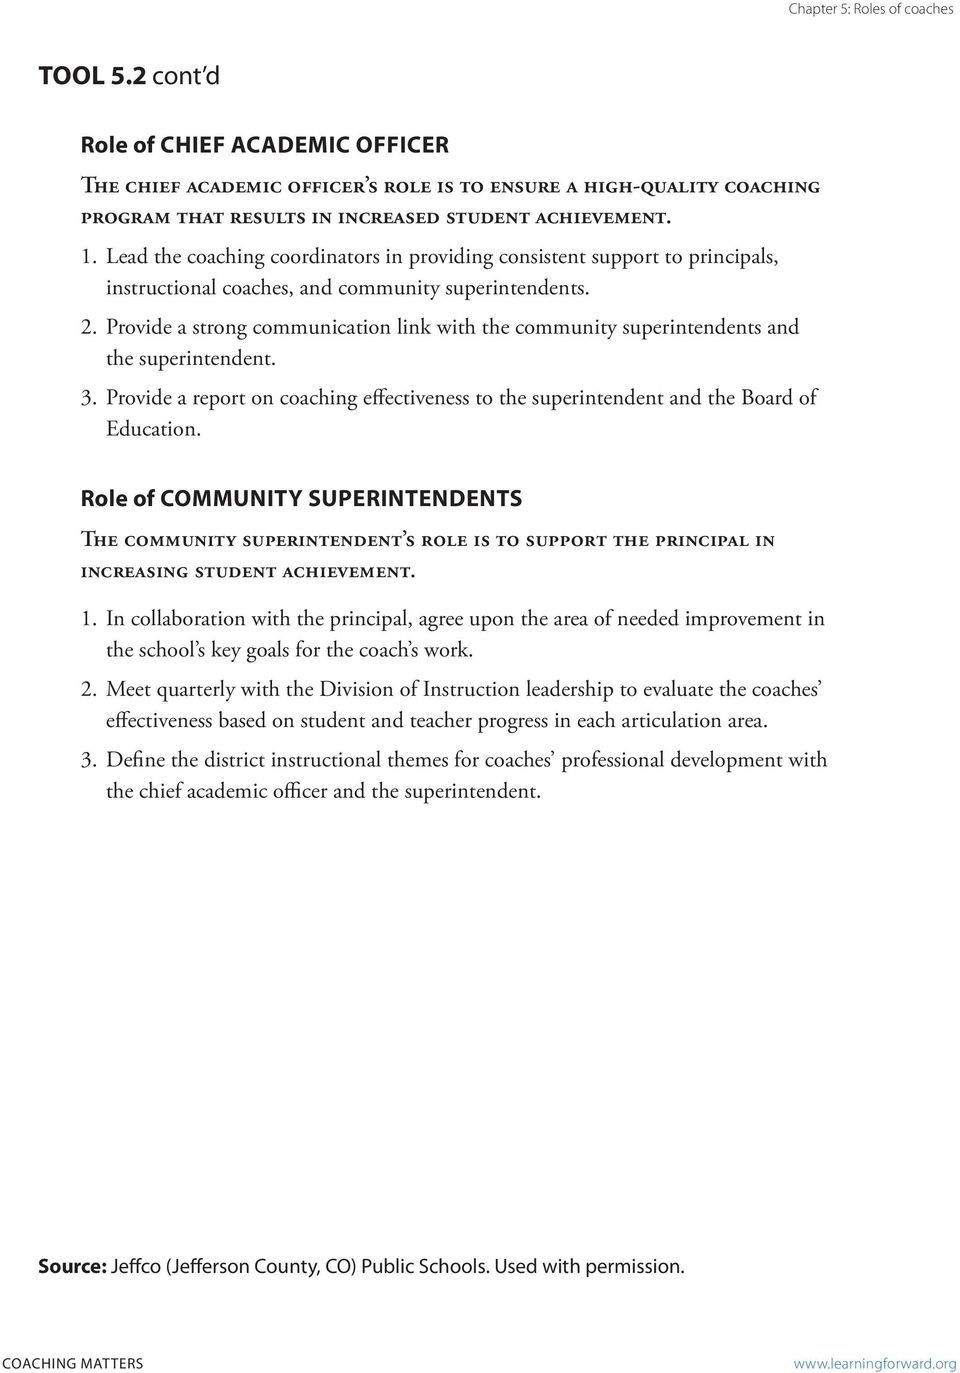 Provide a strong communication link with the community superintendents and the superintendent. 3. Provide a report on coaching effectiveness to the superintendent and the Board of Education.